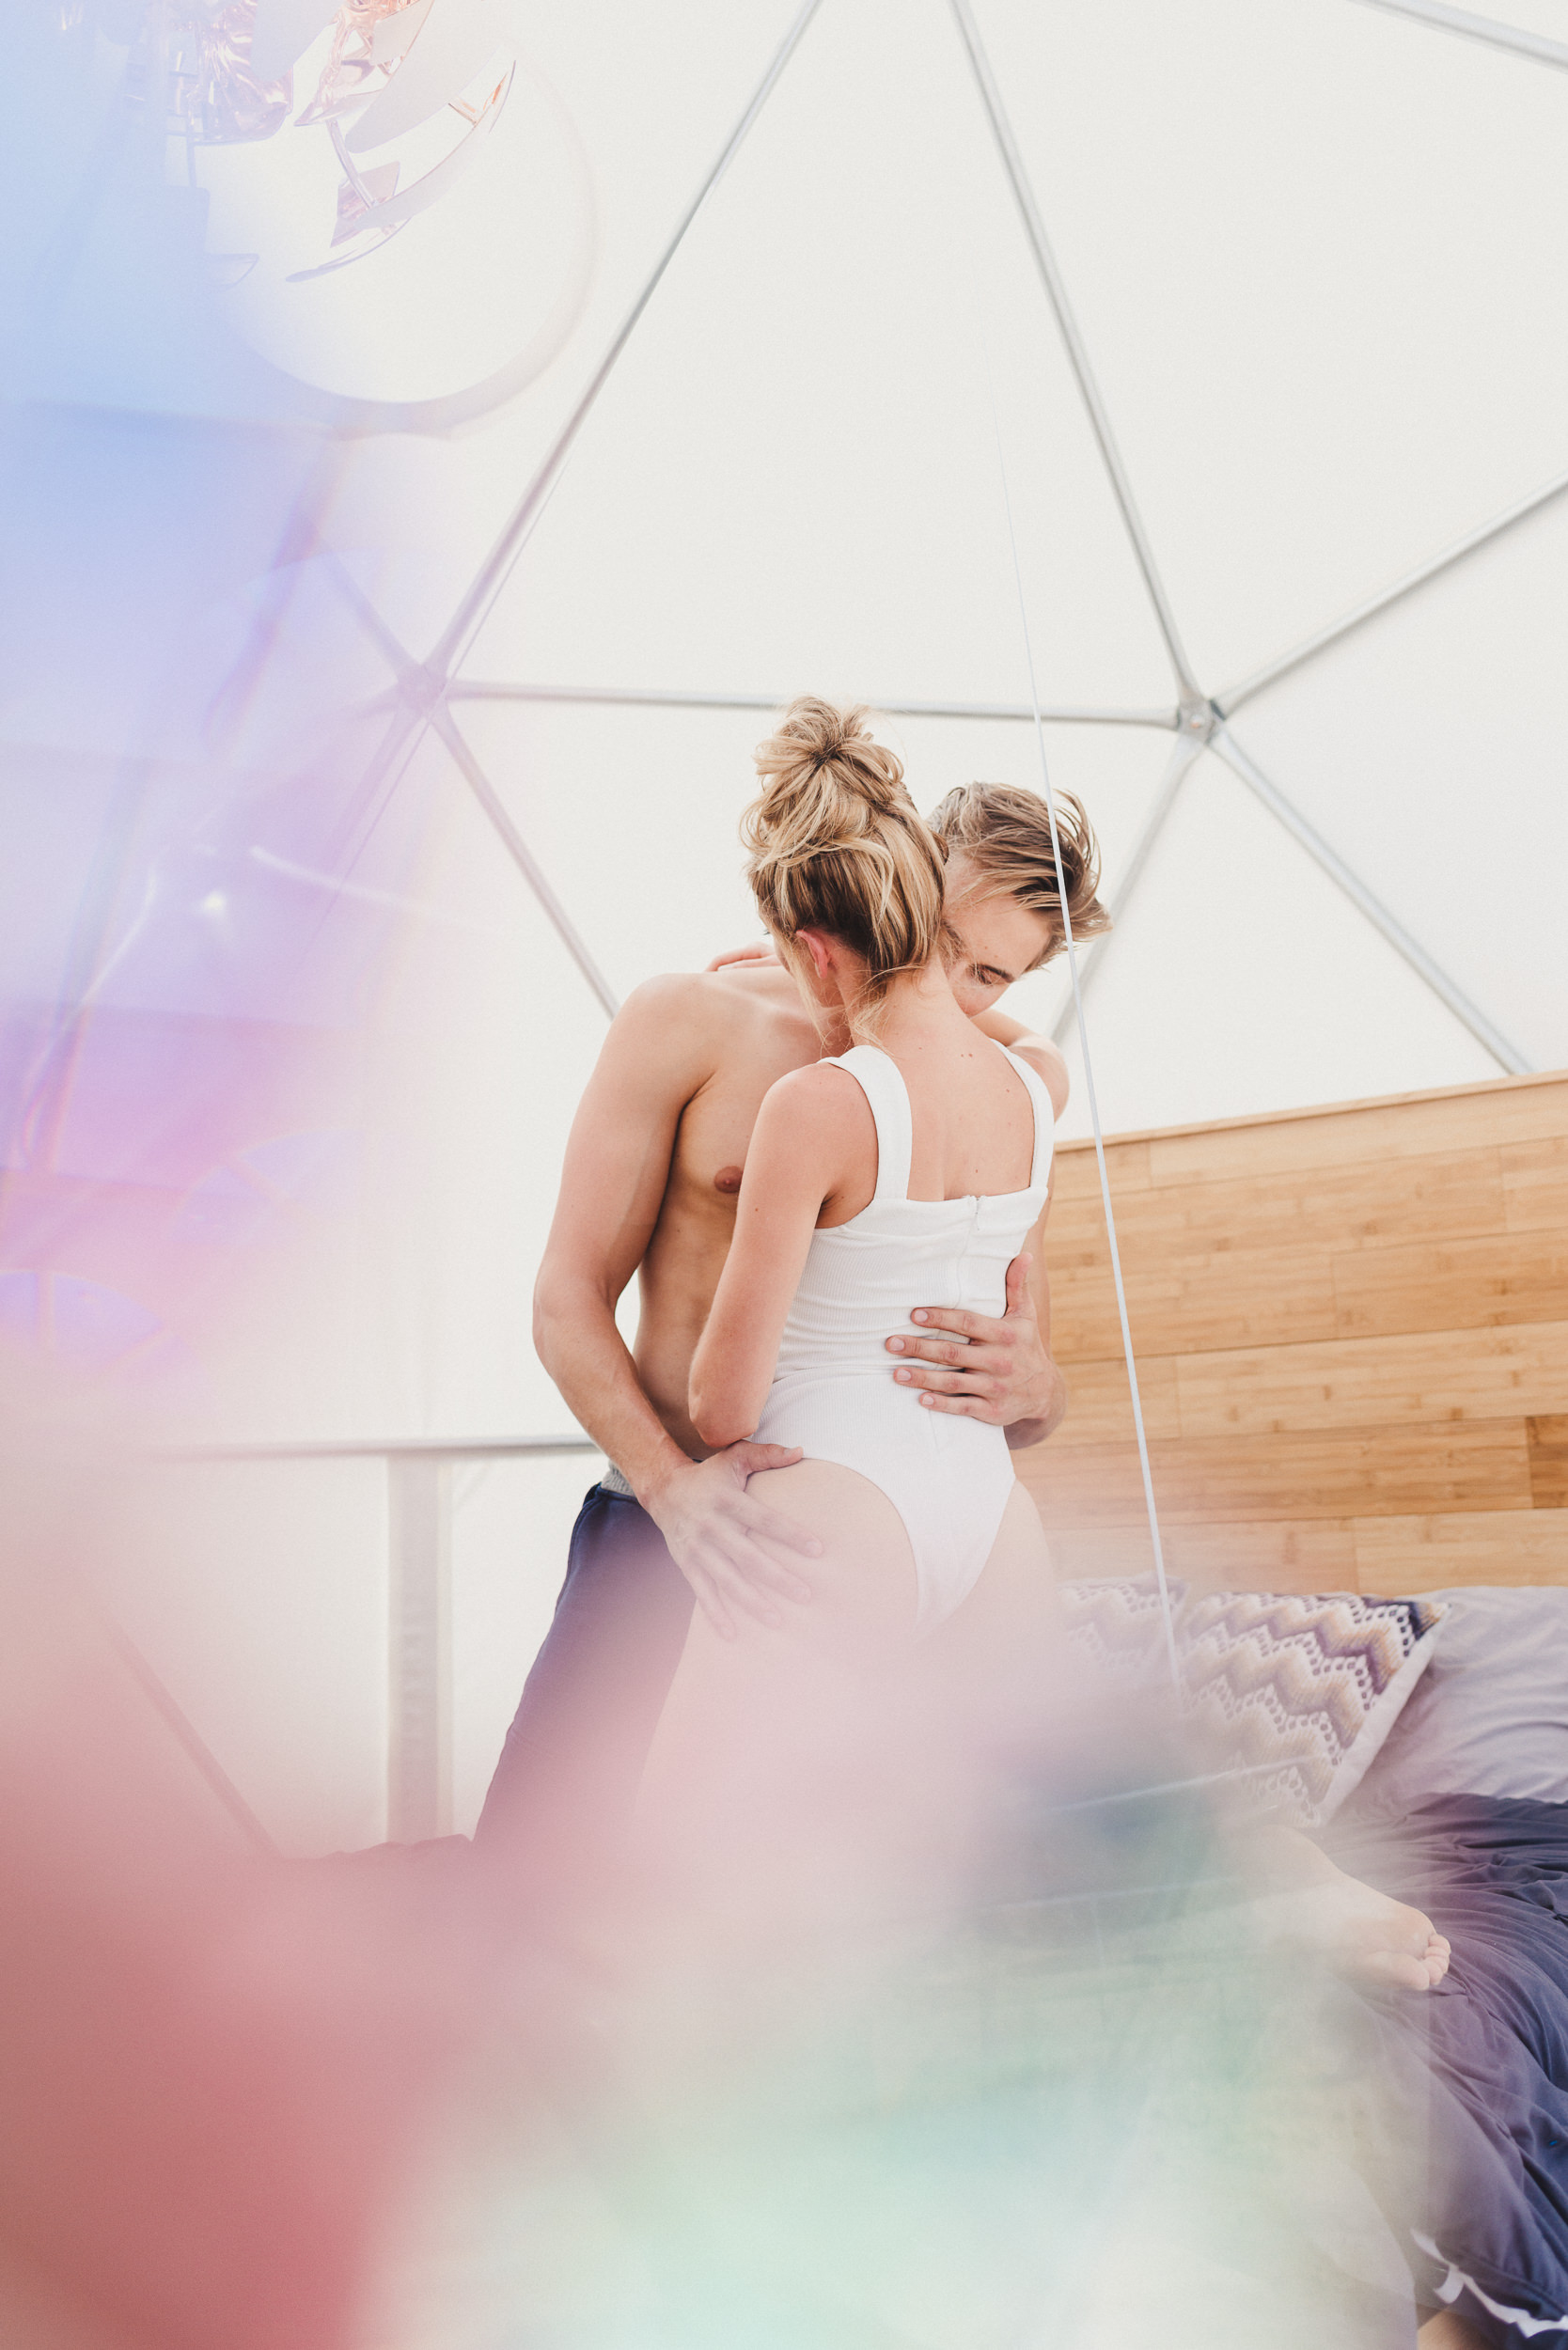 sLiberty + Garrett - In-Home Couple's Session-81.jpg